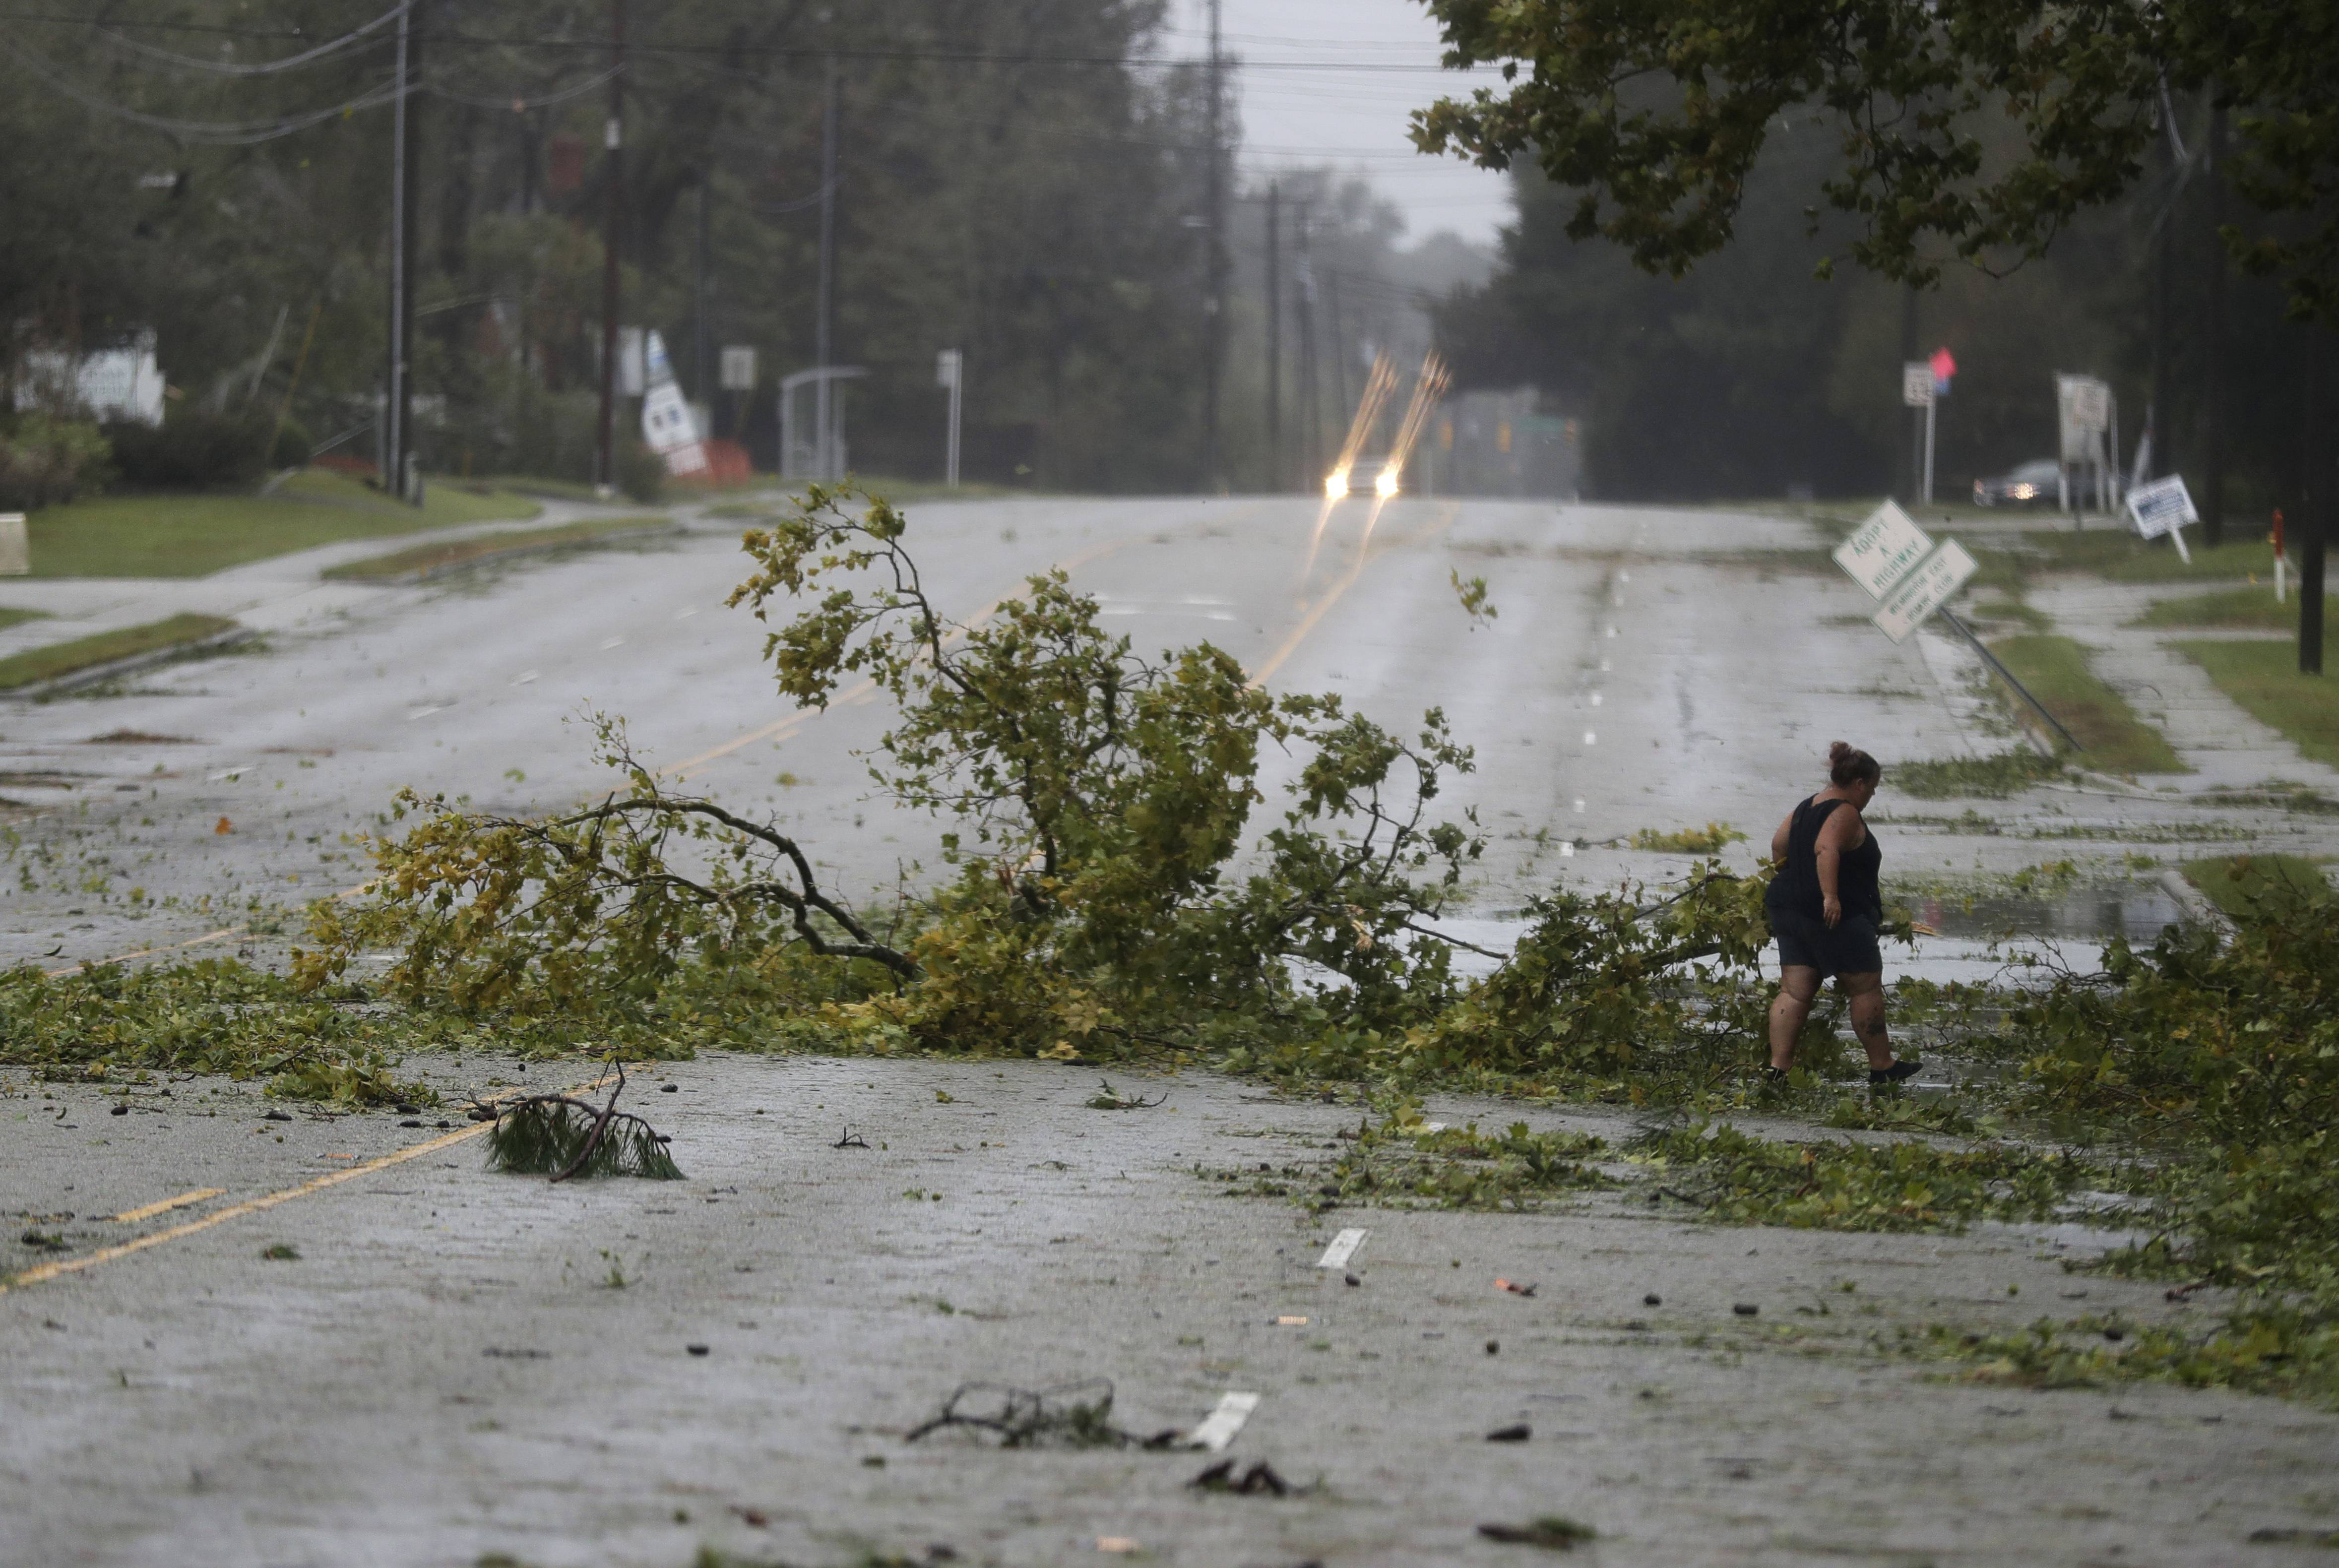 A woman removes debris from a road in Wilmington, N.C., after Hurricane Florence made landfall Friday, Sept. 14, 2018.